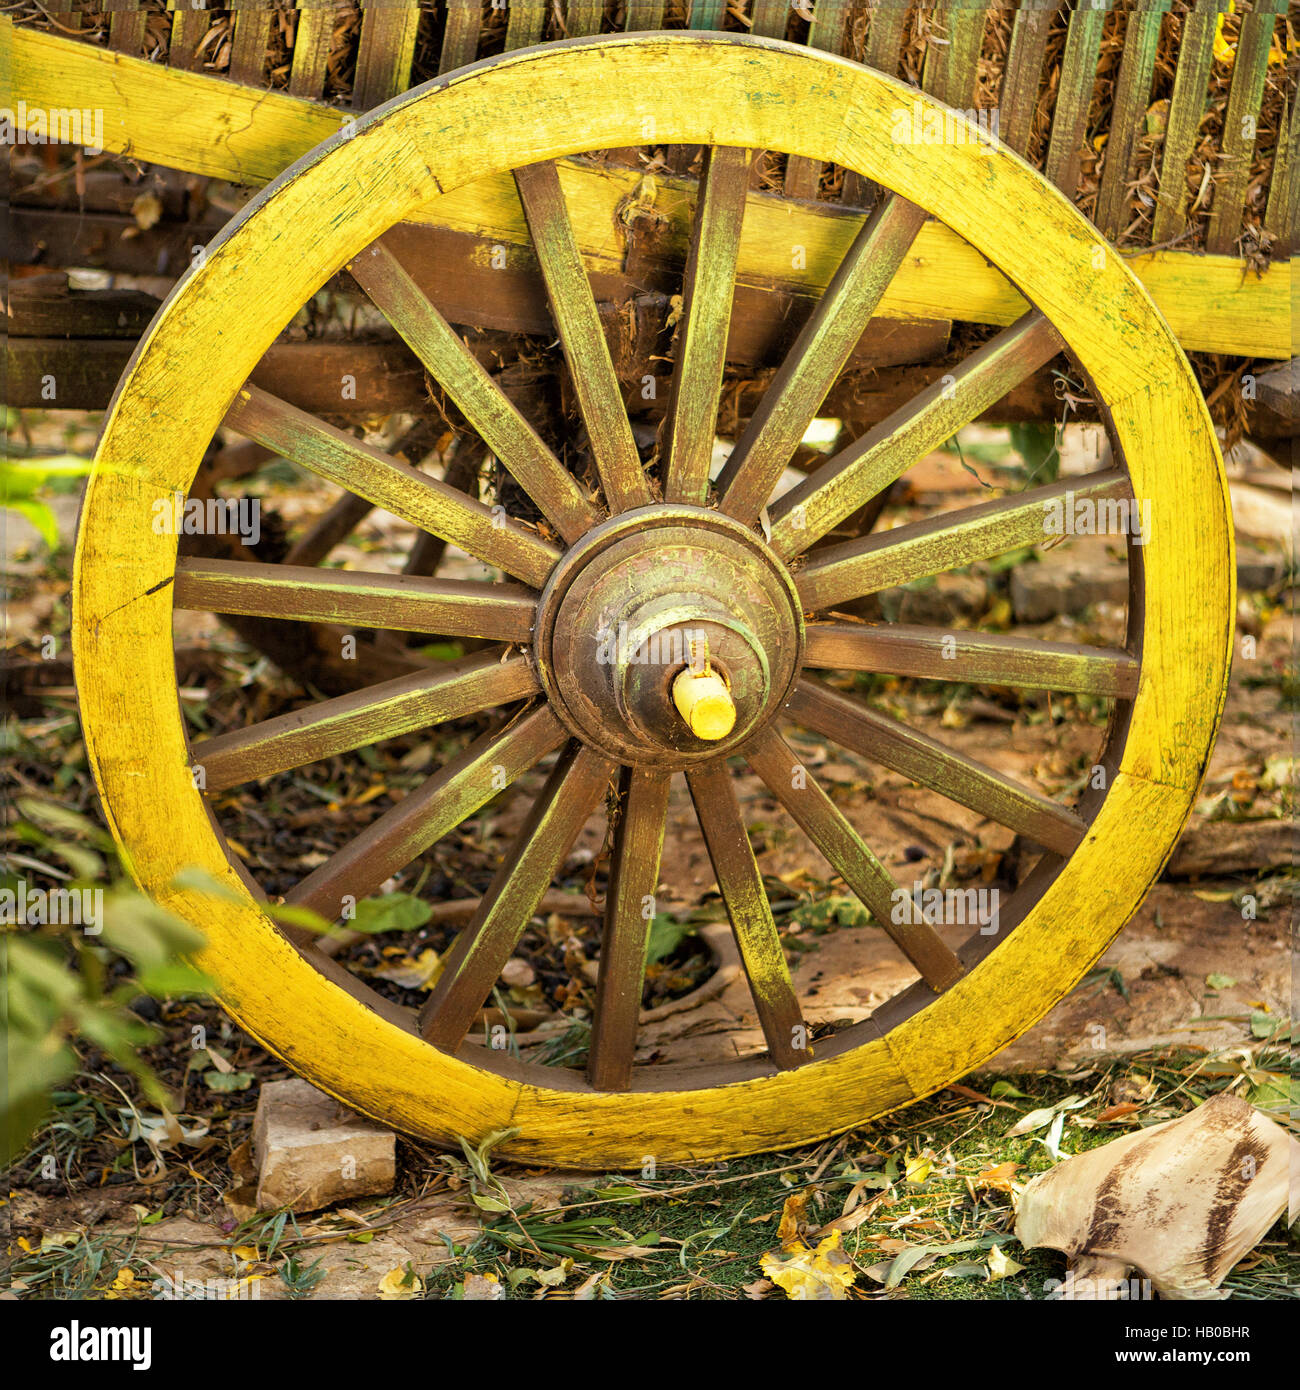 Painted Wooden Wheel Stock Photos & Painted Wooden Wheel Stock ...